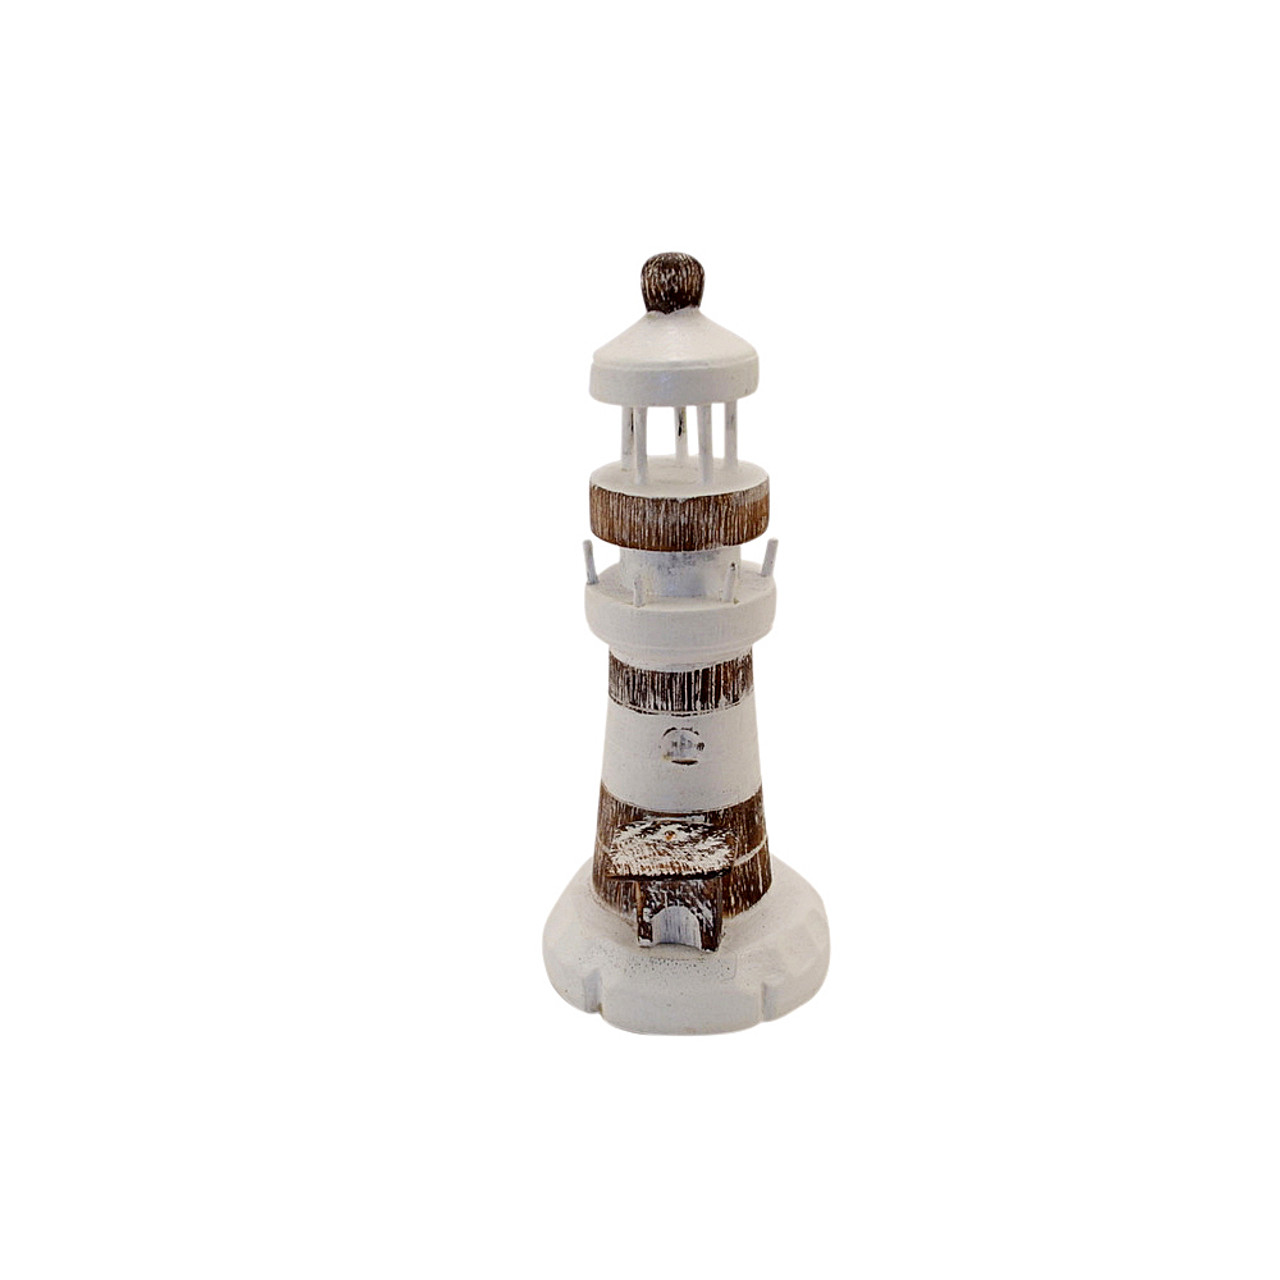 Table top hand carved light house table top accessory White/Natural Small 20  cn x 8 cm